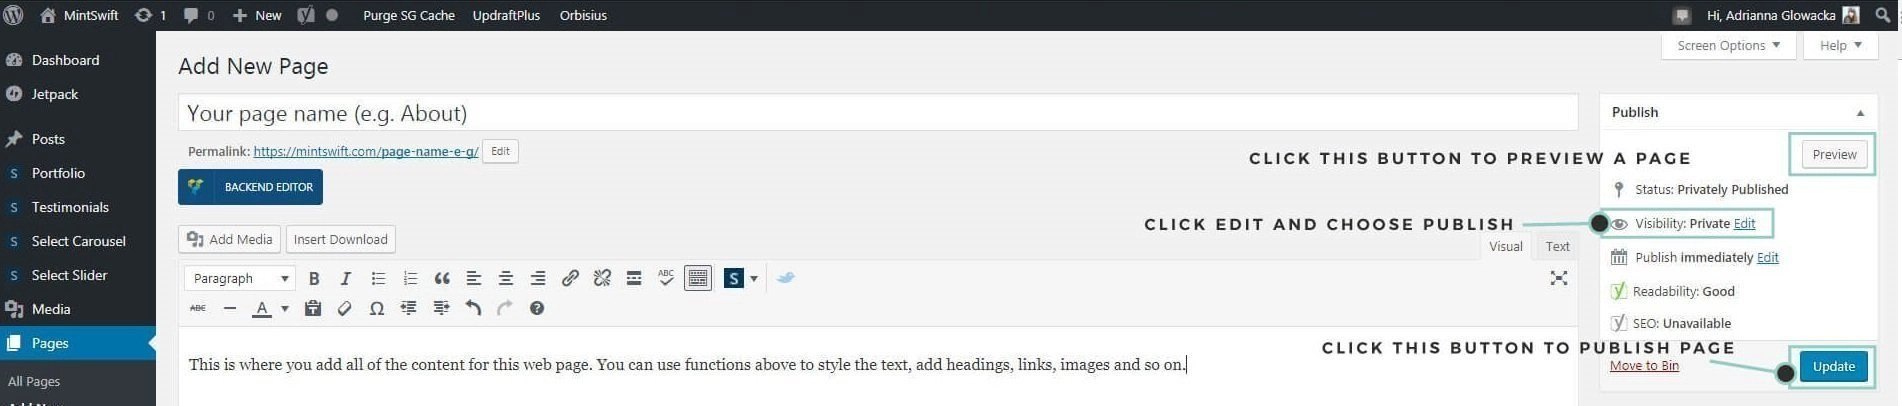 How to preview and publish page in WordPress - MintSwift